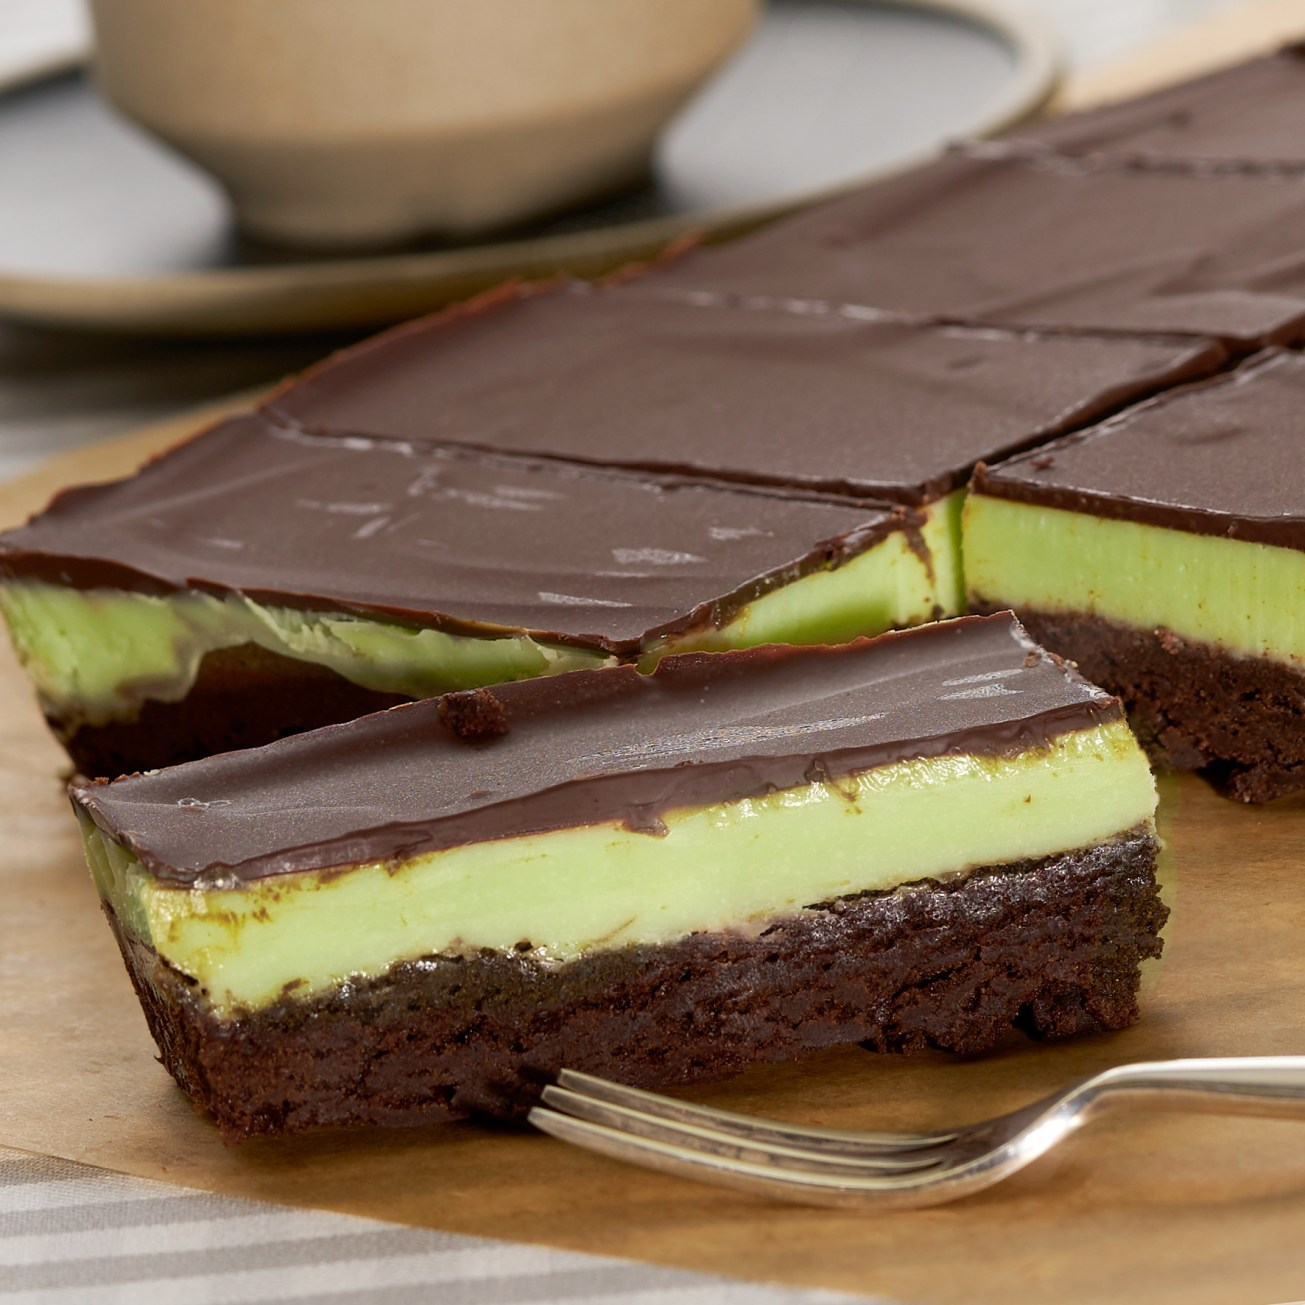 Chocolate cake with mint filling